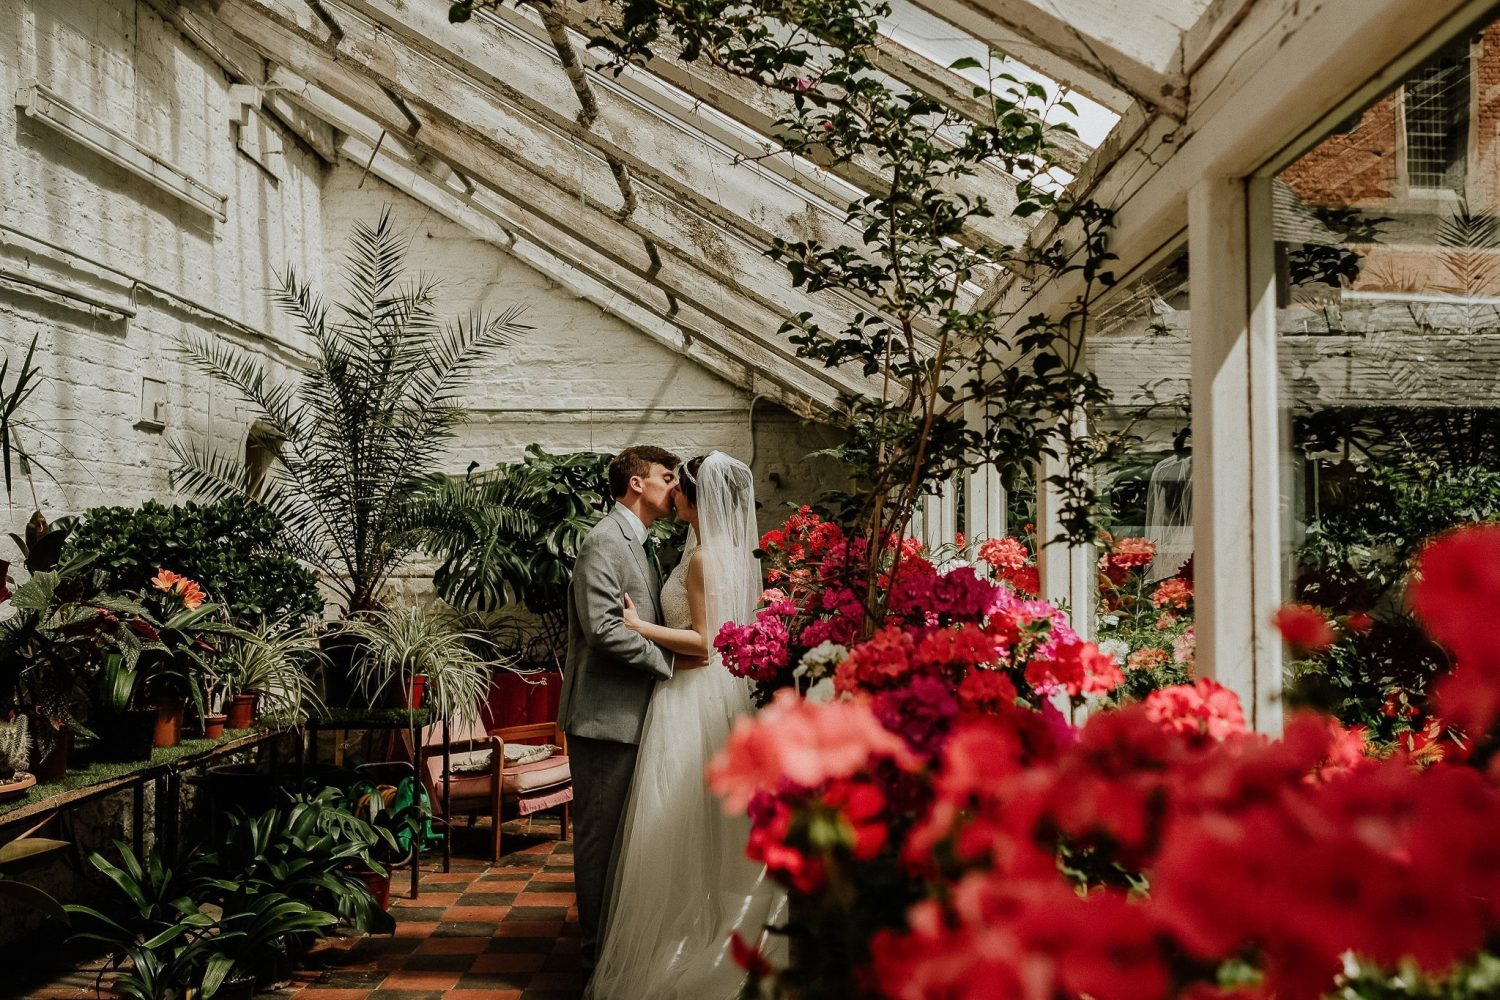 bride and groom in a greenhouse with lush red flowers